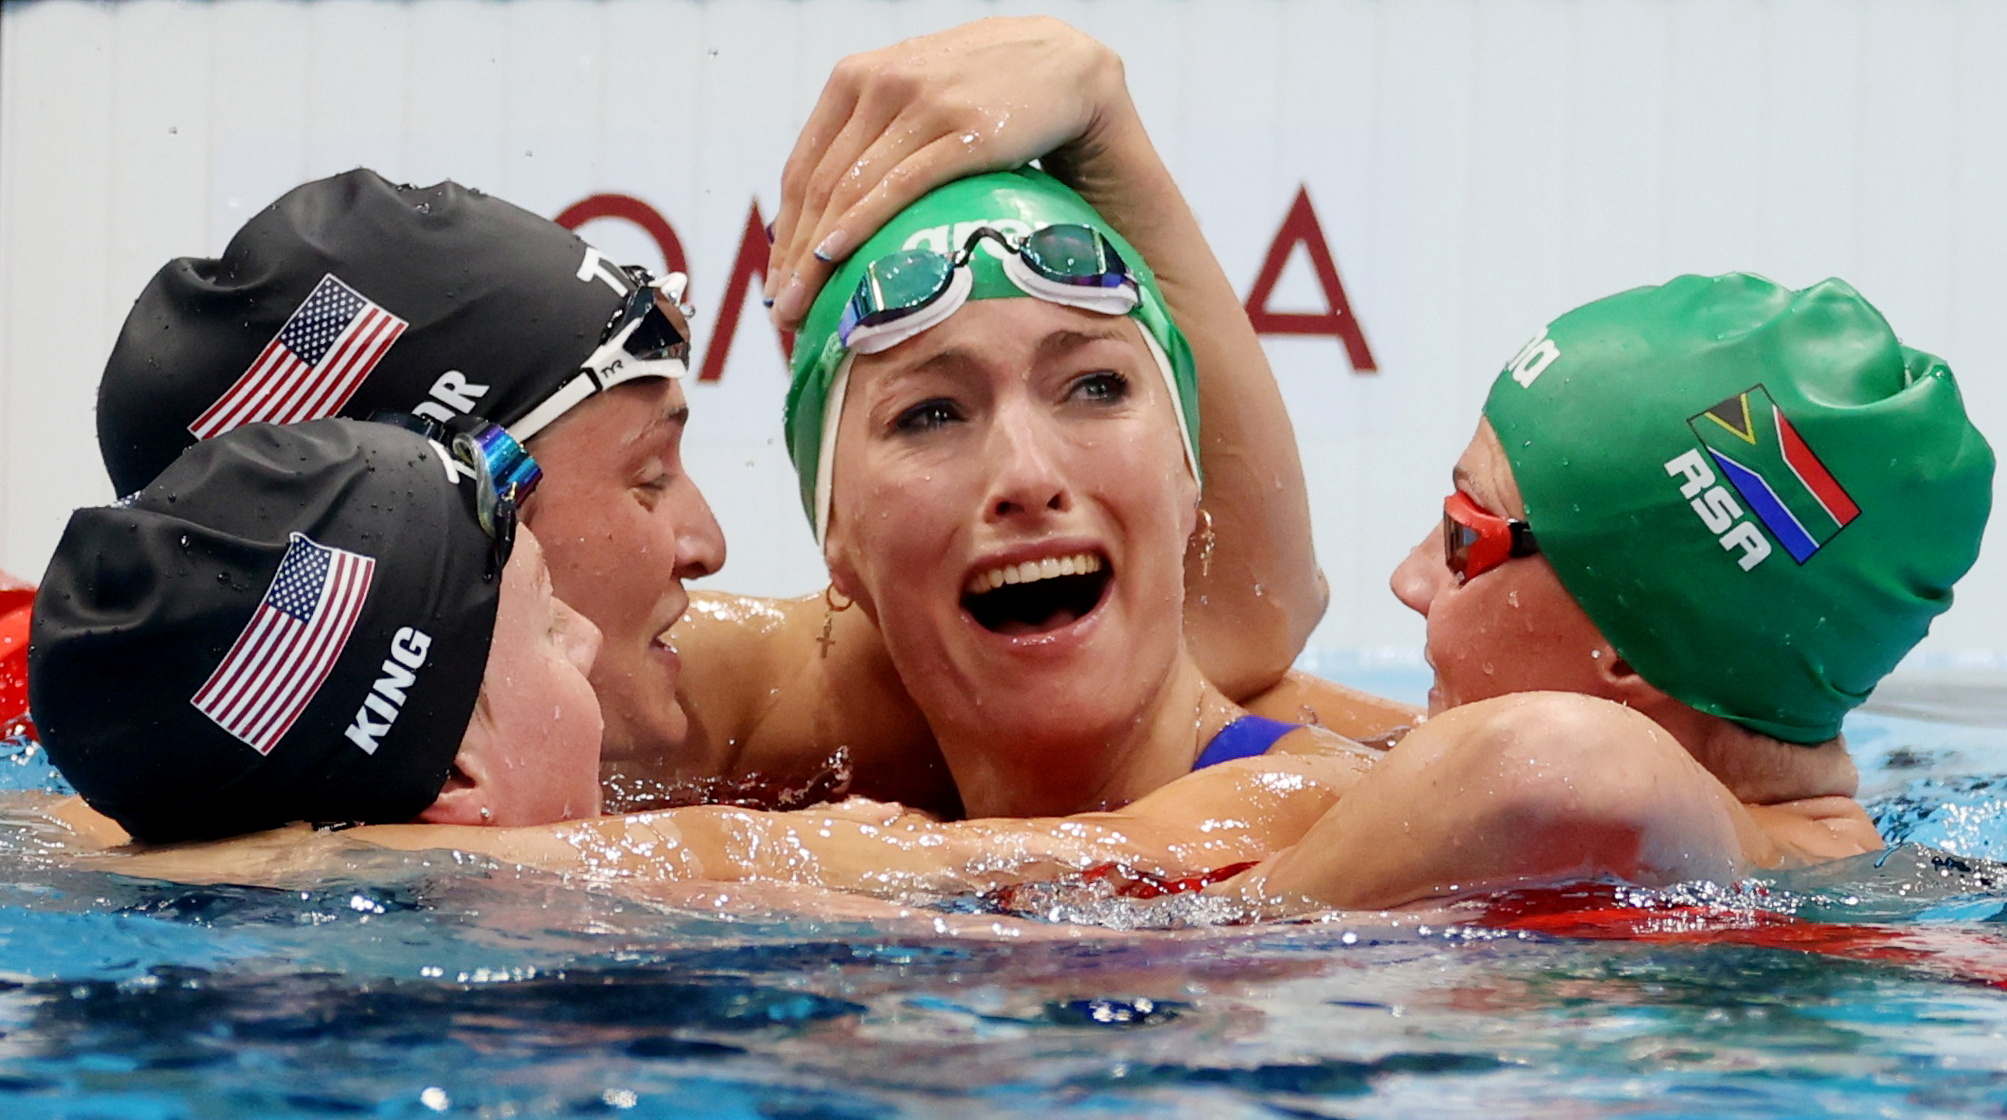 South African swimmer Tatjana Schoenmaker is congratulated by some of her fellow competitors — from left, American Lilly King, American Annie Lazor and South African Kaylene Corbett — afterwinning gold in the 200 meters breaststrokeon July 30.